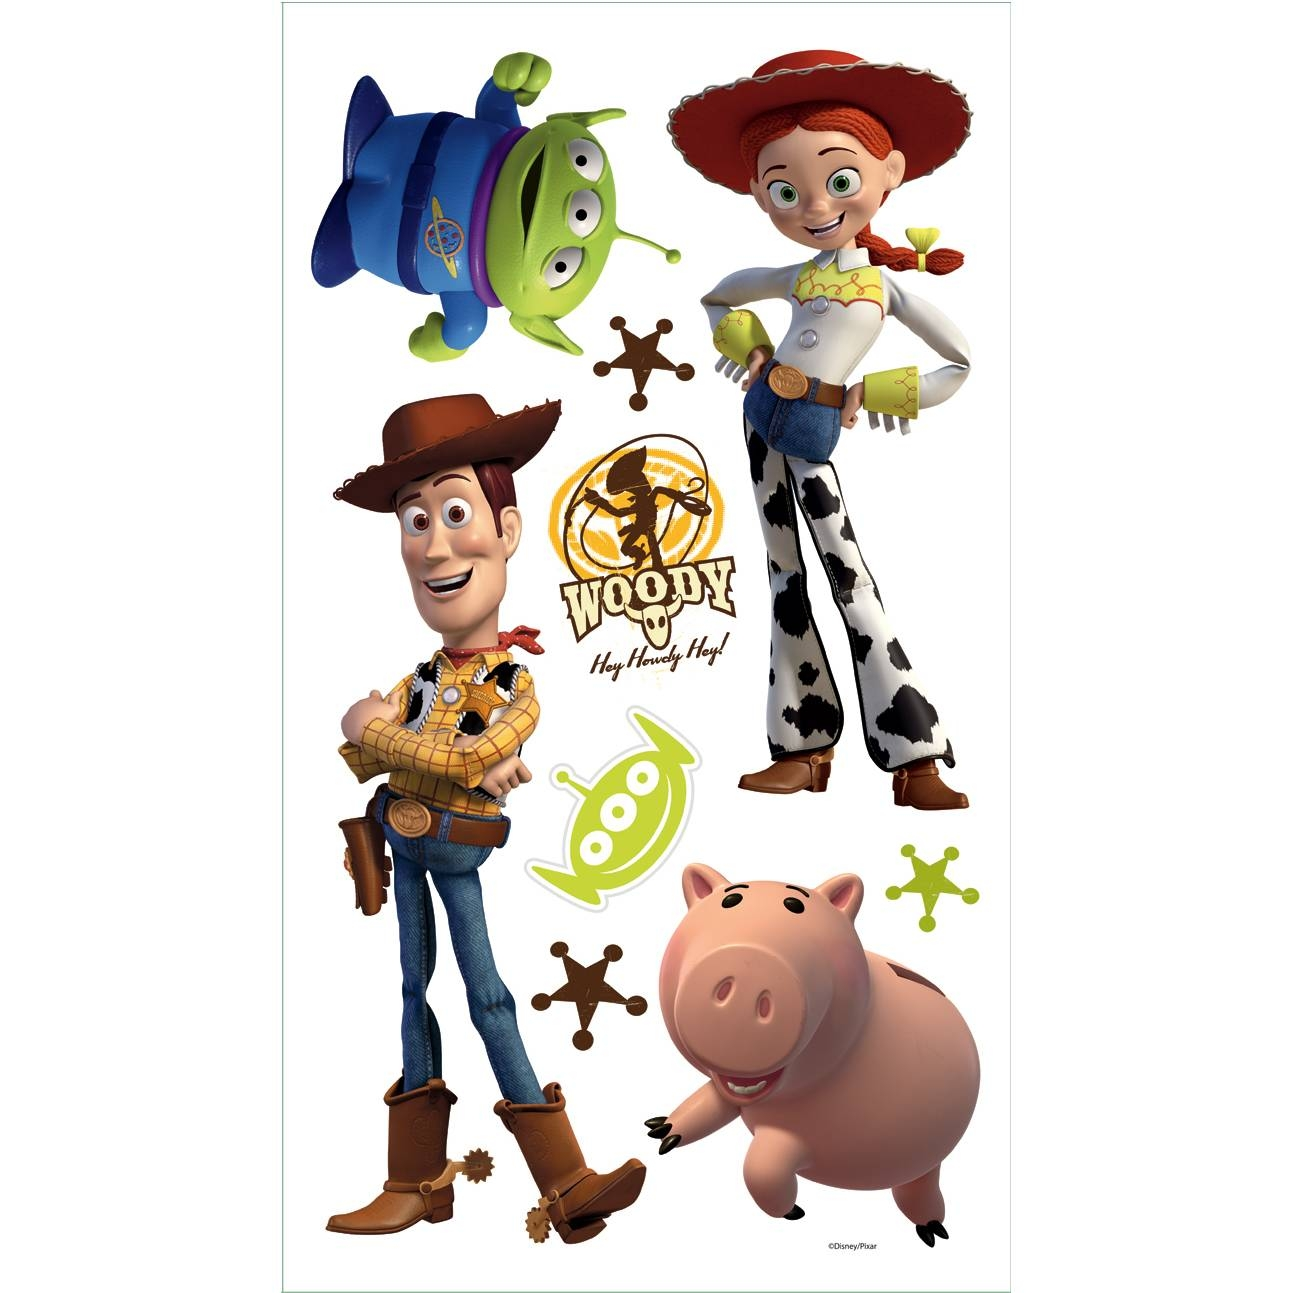 Toy Story 3 Removable Decals | Potty Training Concepts throughout Most Up-to-Date Toy Story Wall Stickers